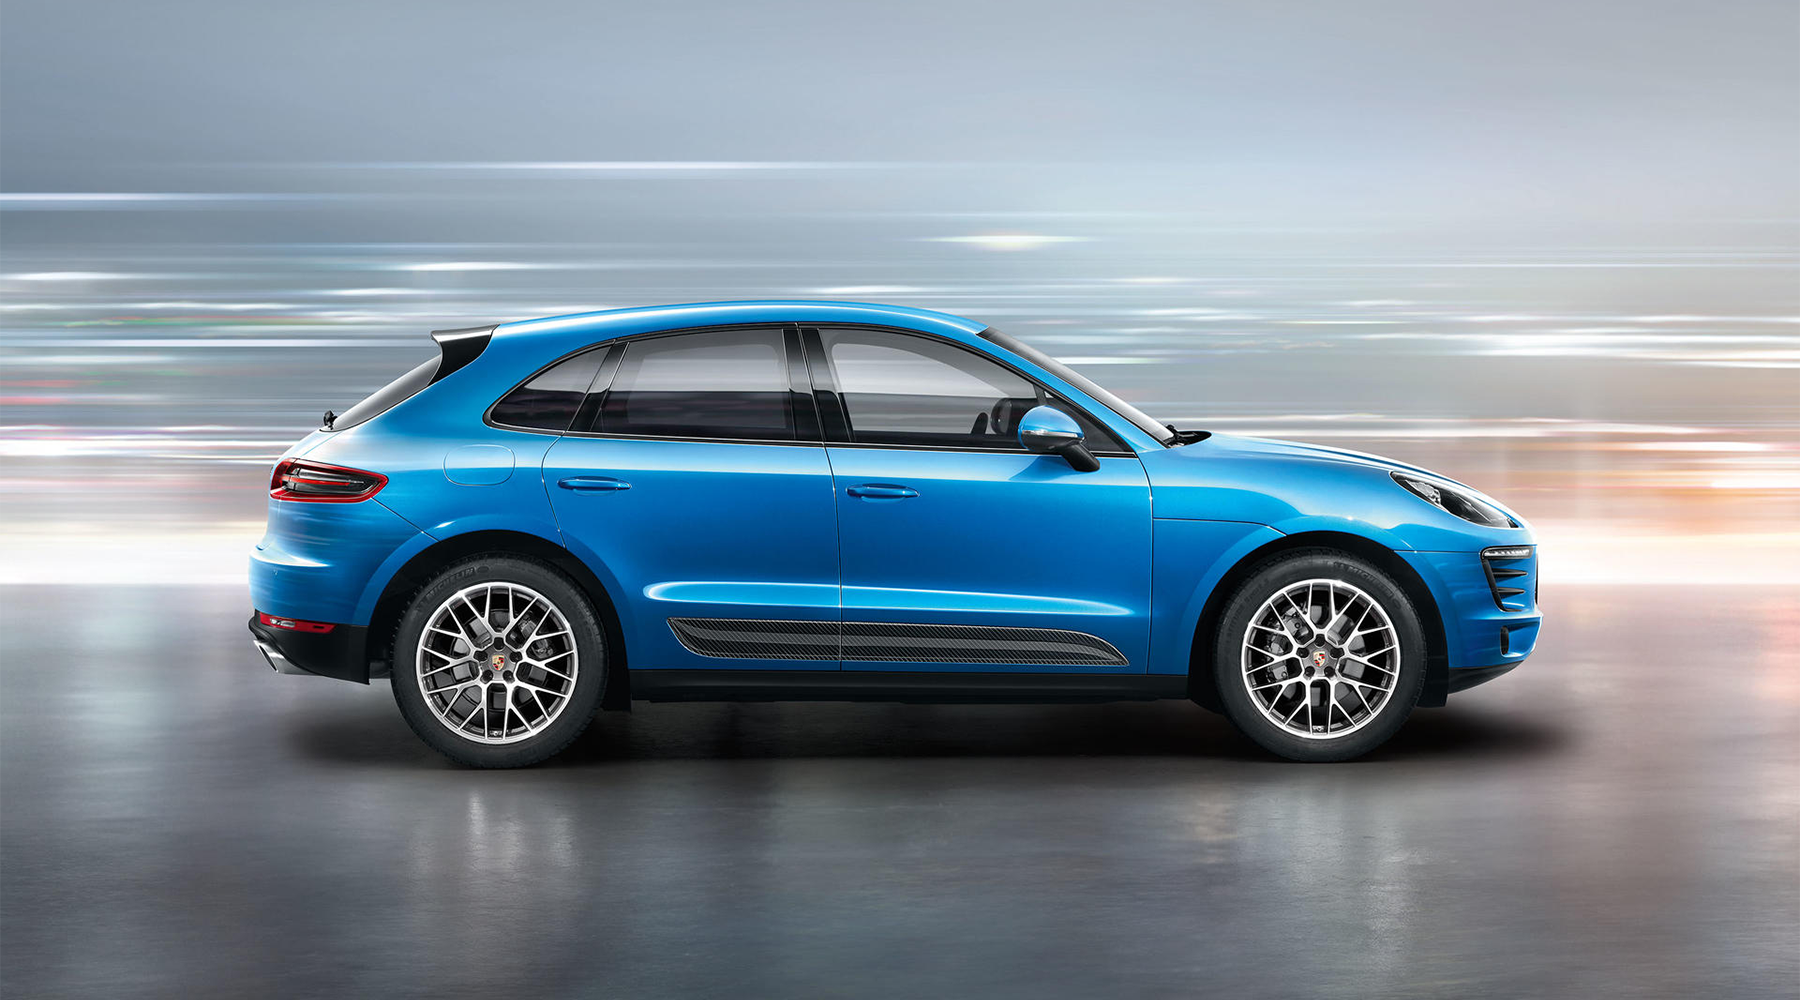 2018 Porsche Macan Side Profile